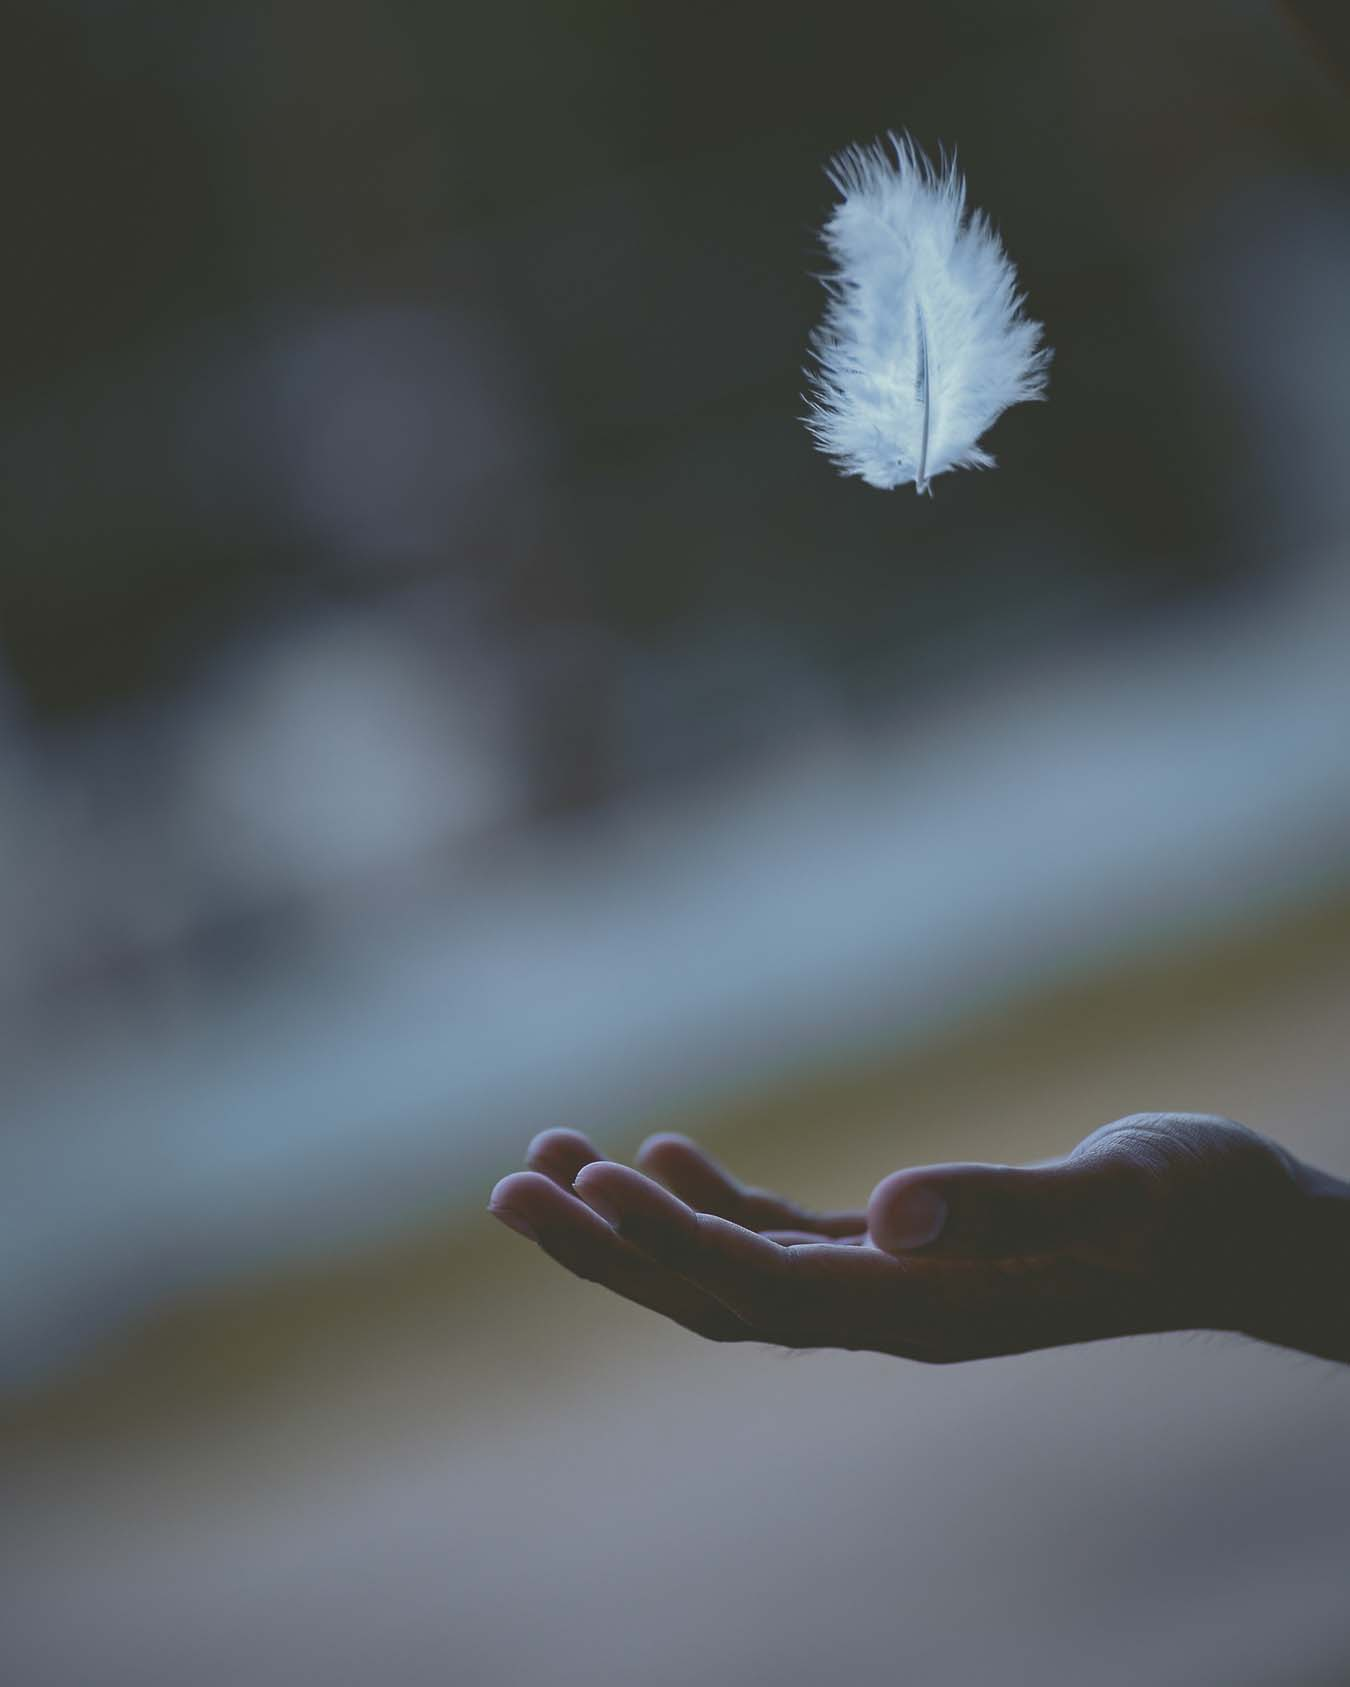 A feather glides in the air and a hand waits for it to fall.